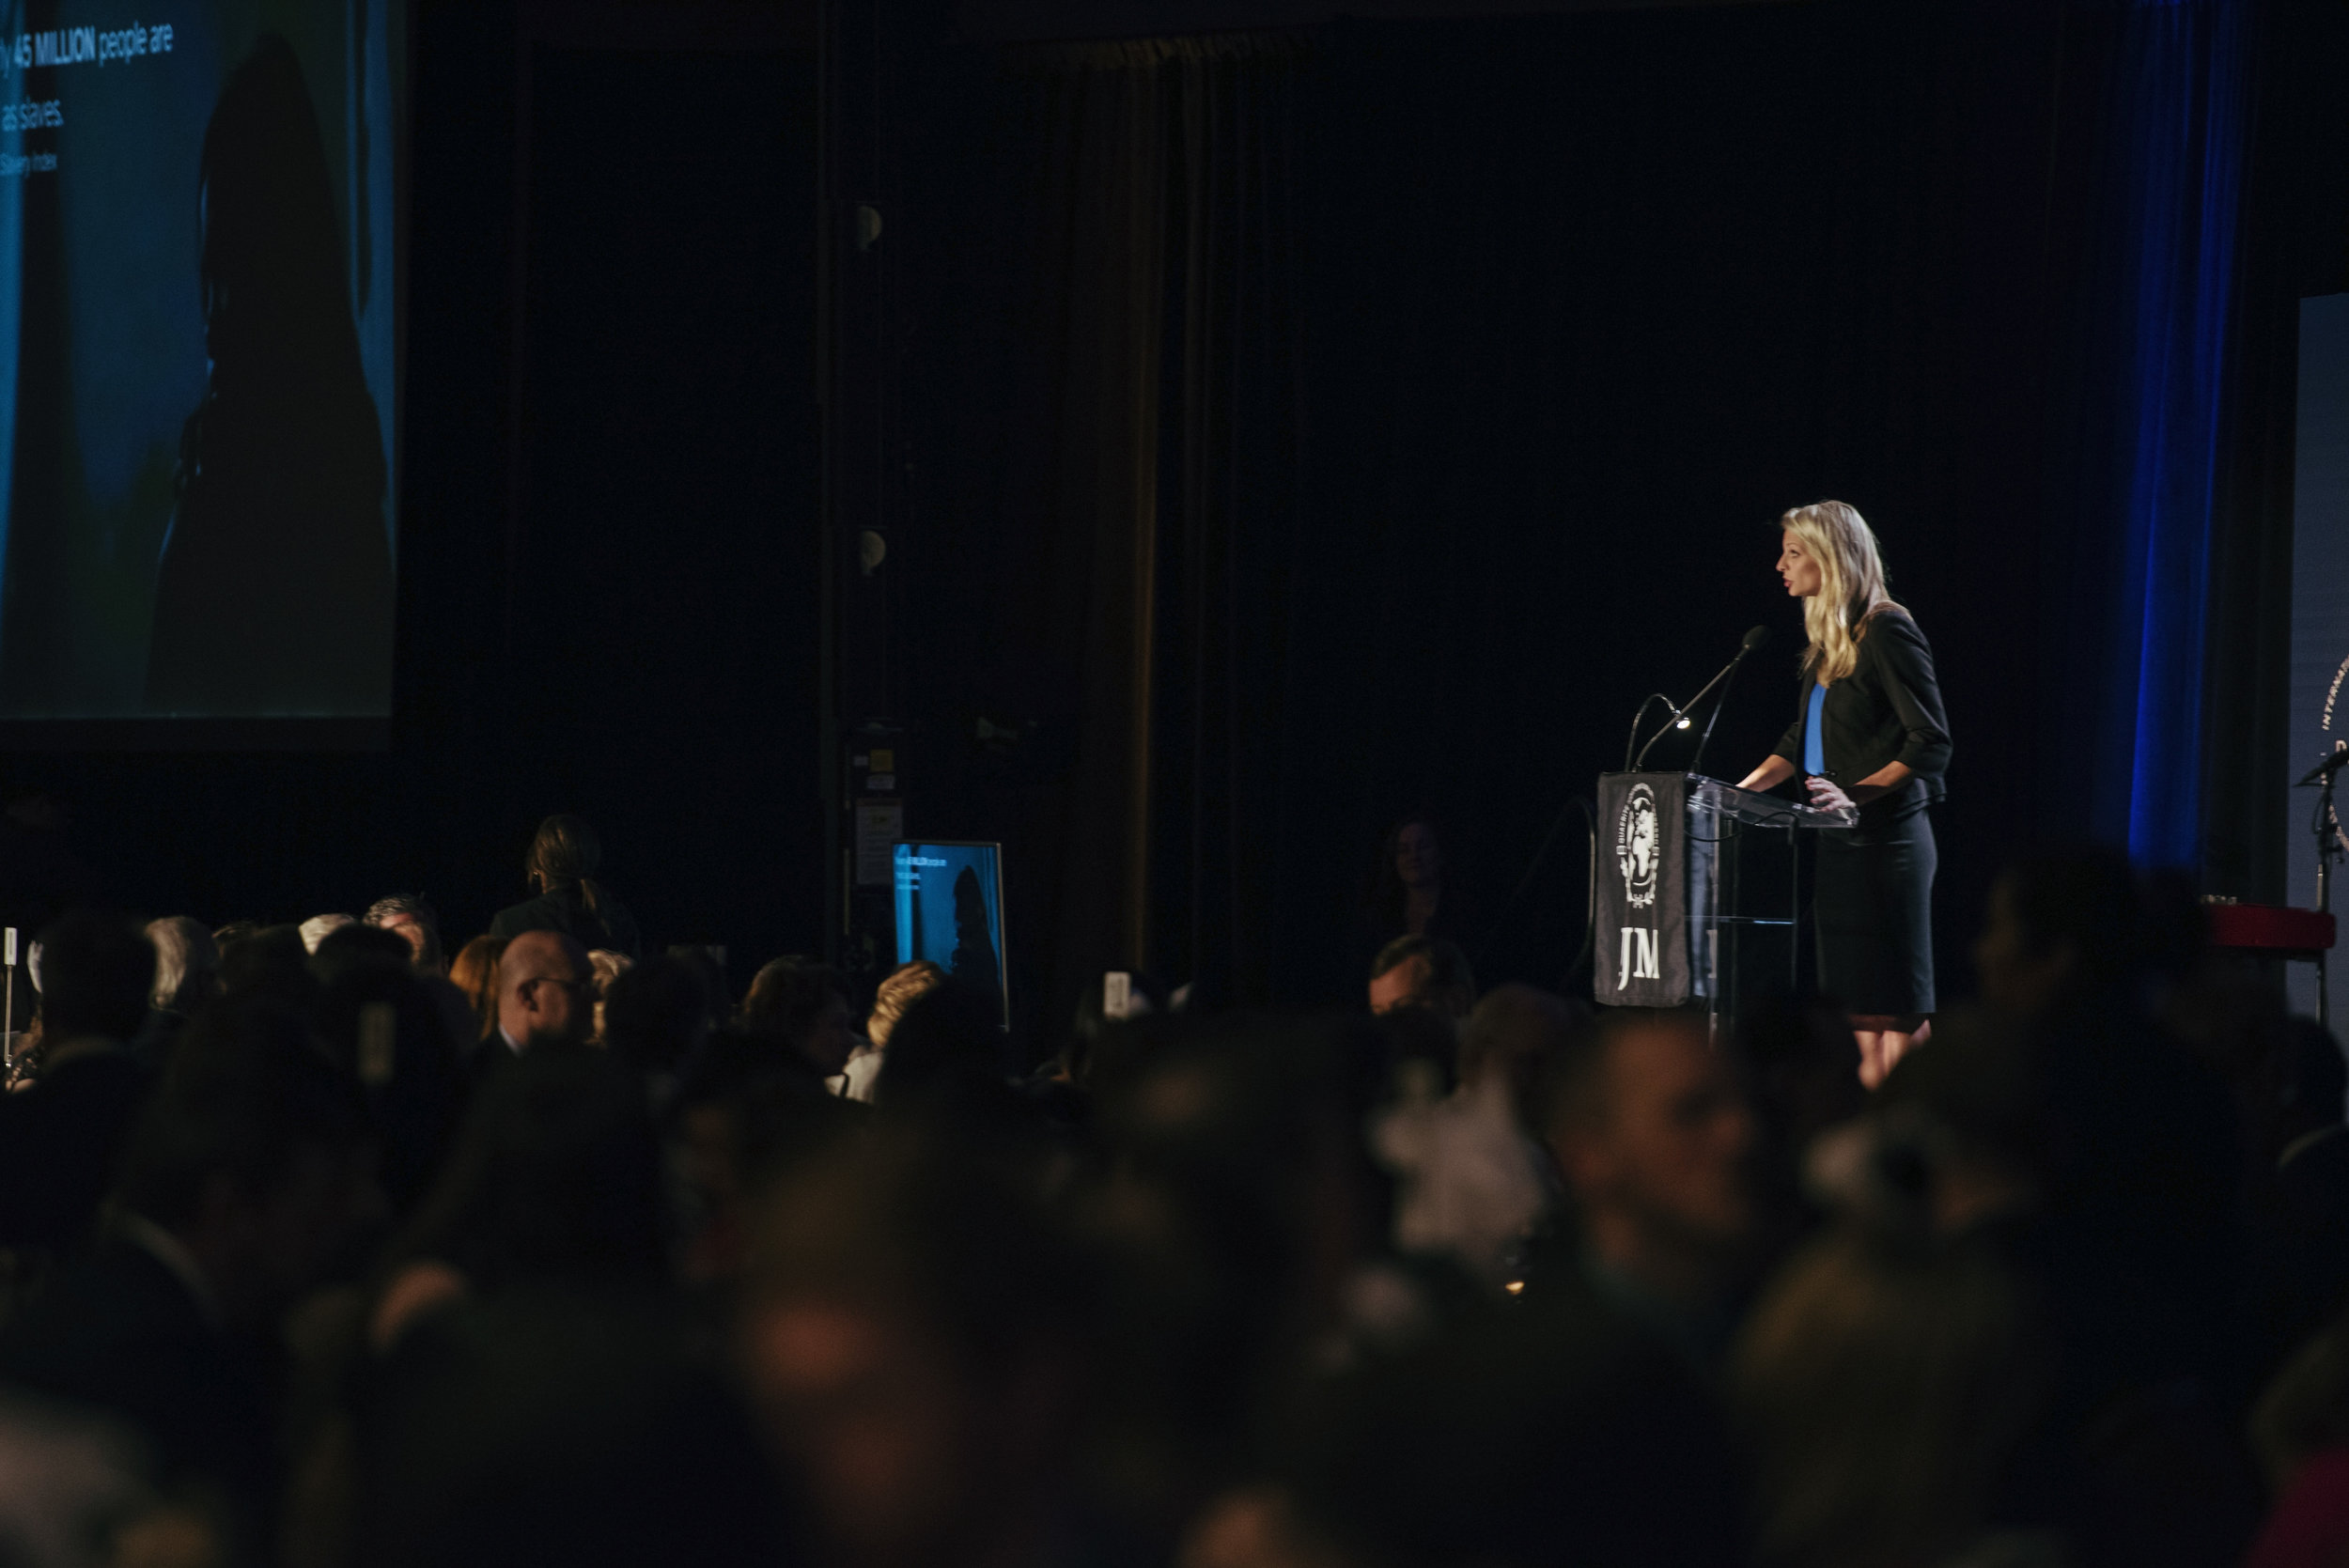 Mallory provides an overview of IJM's work at the 2017 Dallas Benefit Dinner at the Omni Hotel Downtown.